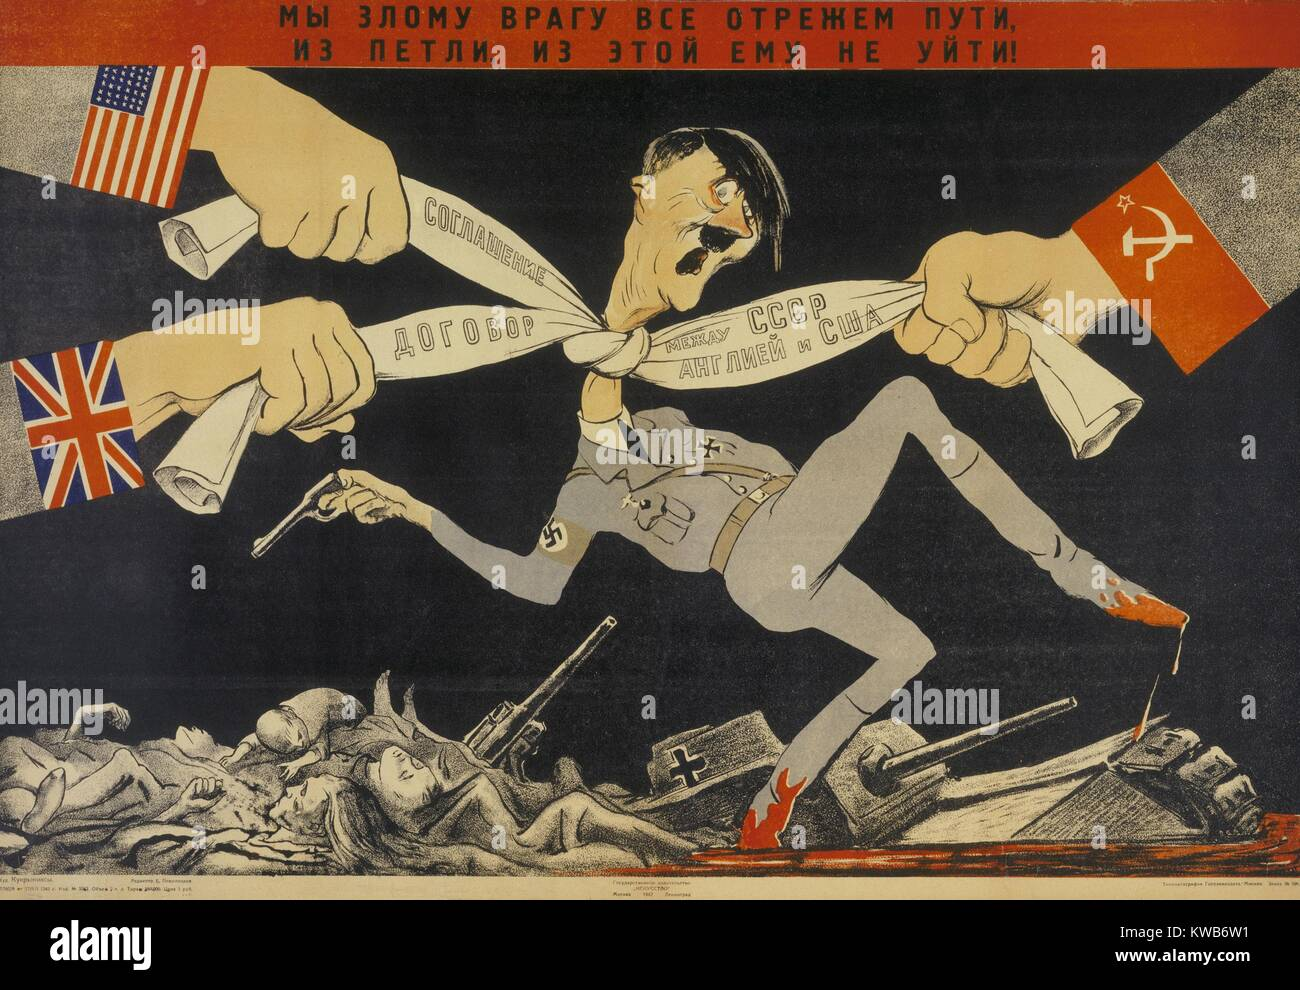 Soviet World War 2 poster by Kukryniksy, 1942. 'We will cut off all roads to the evil enemy, he will not escape Stock Photo